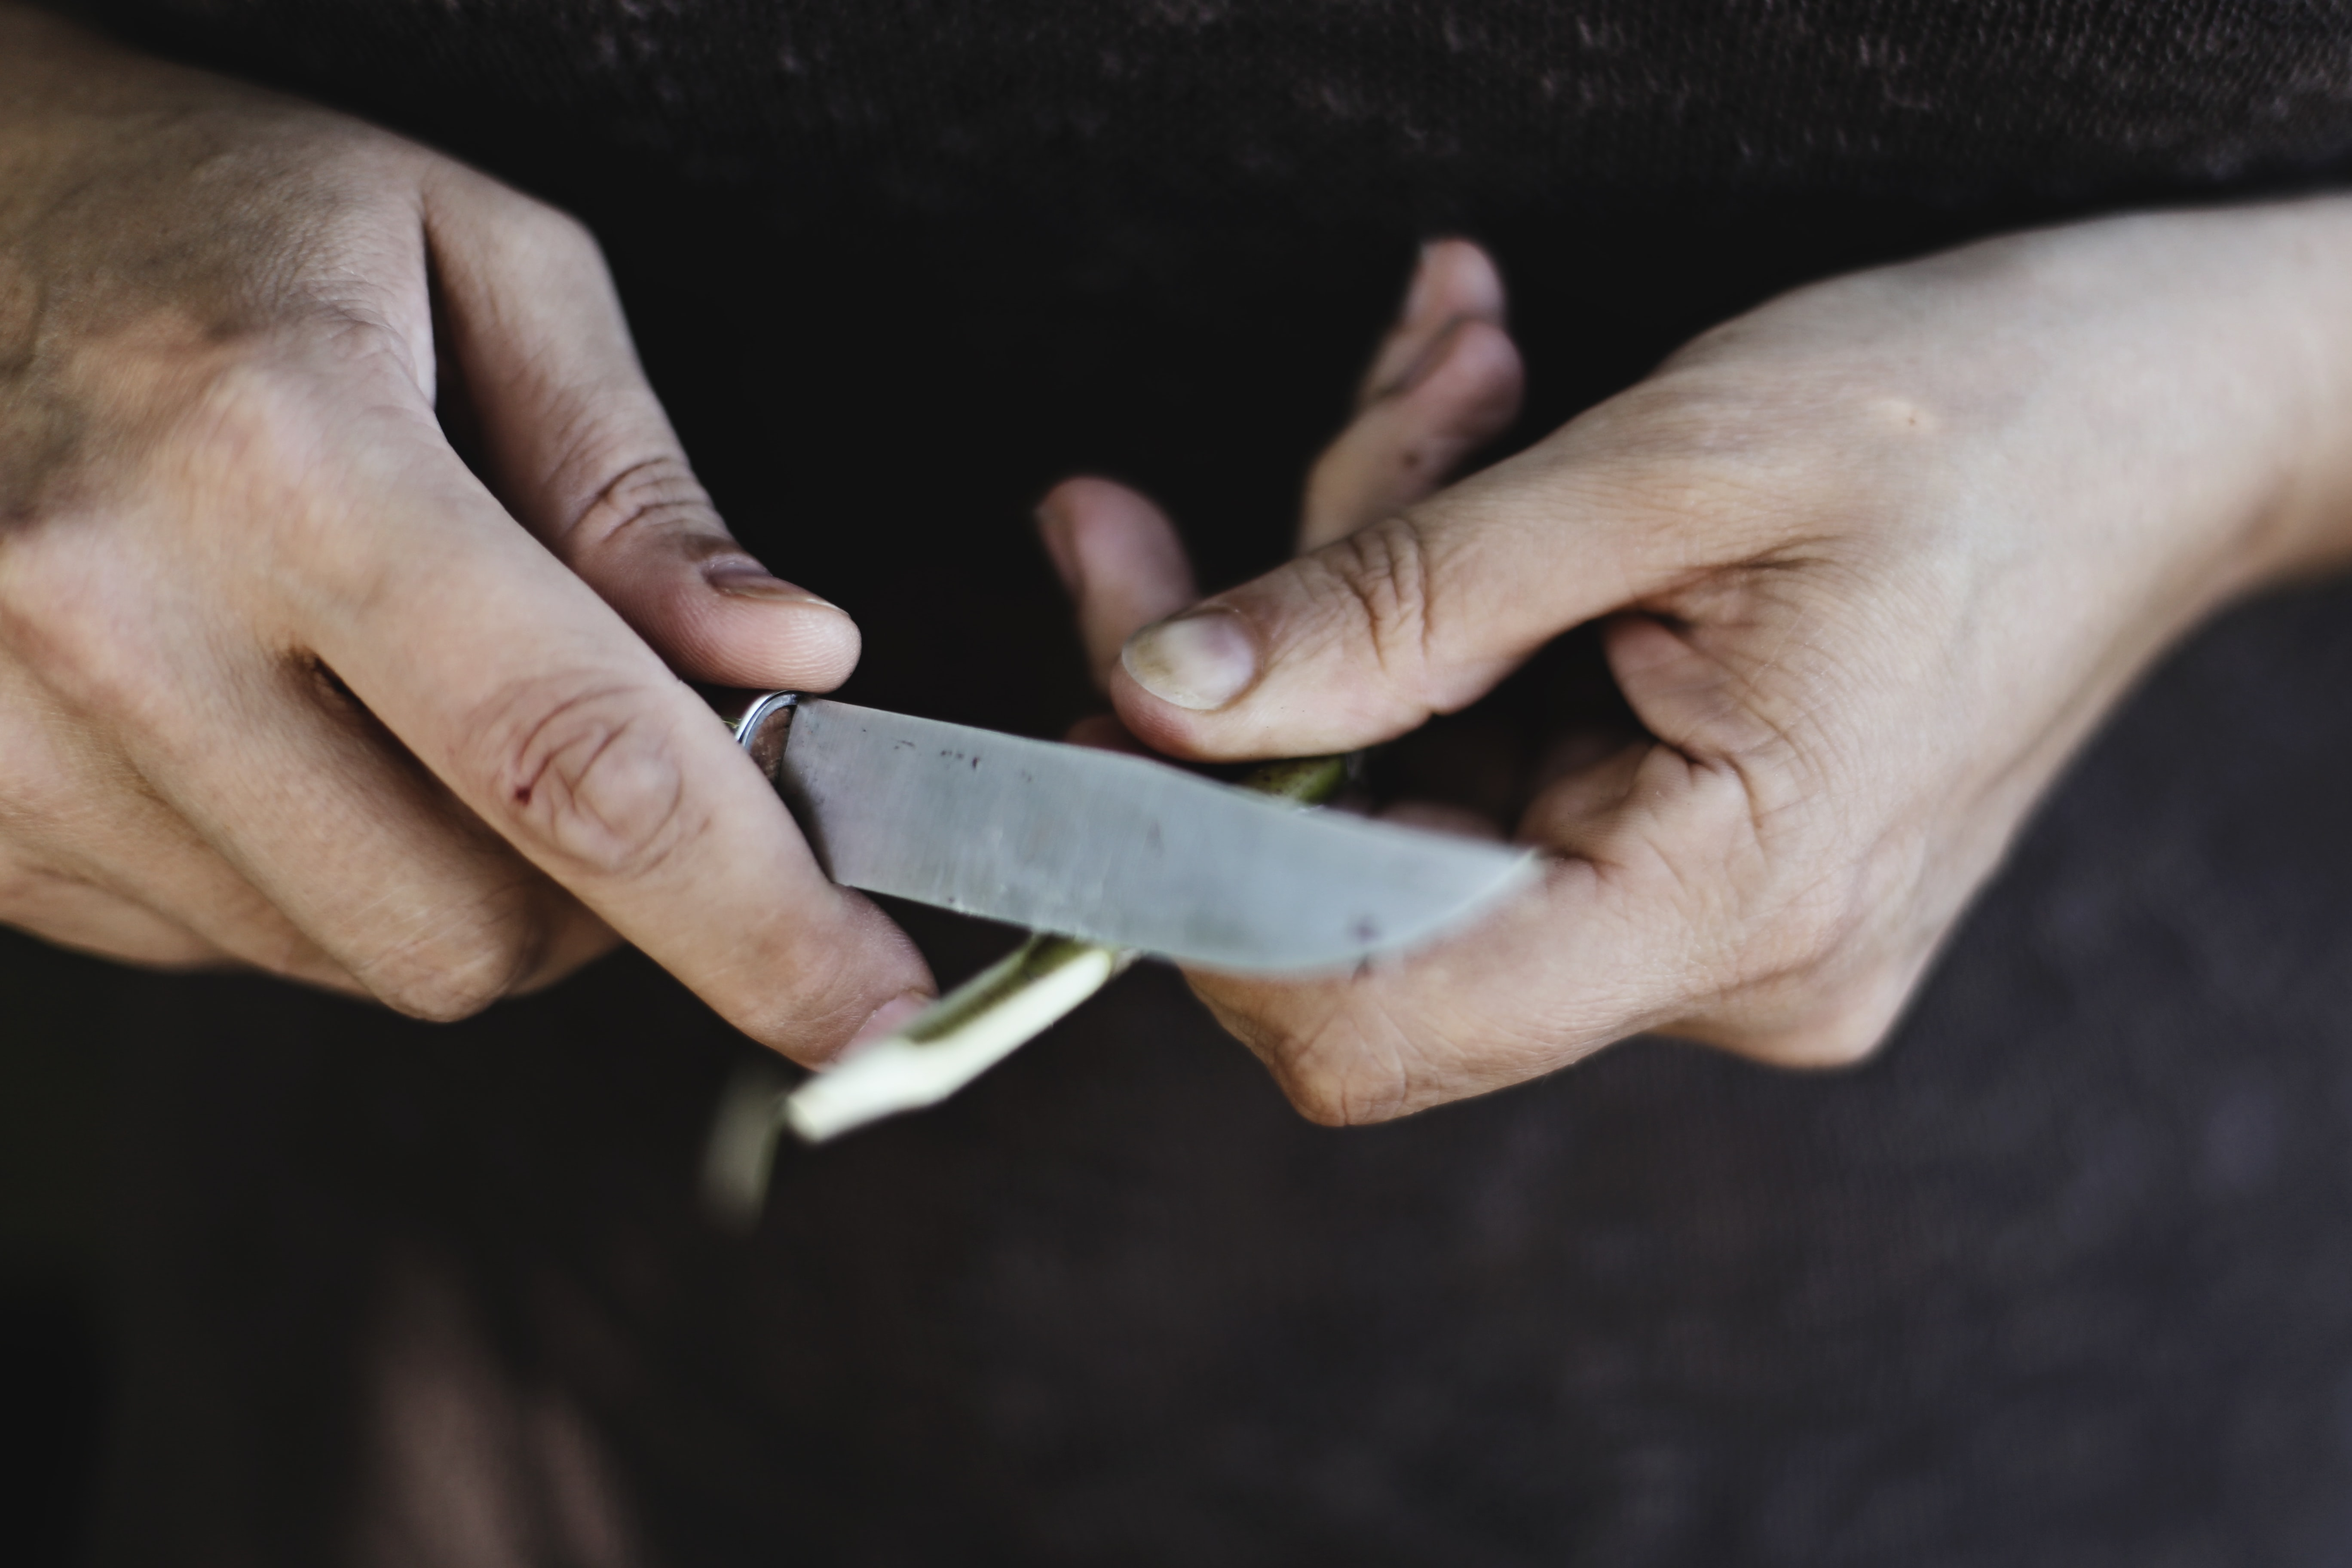 person holding knife